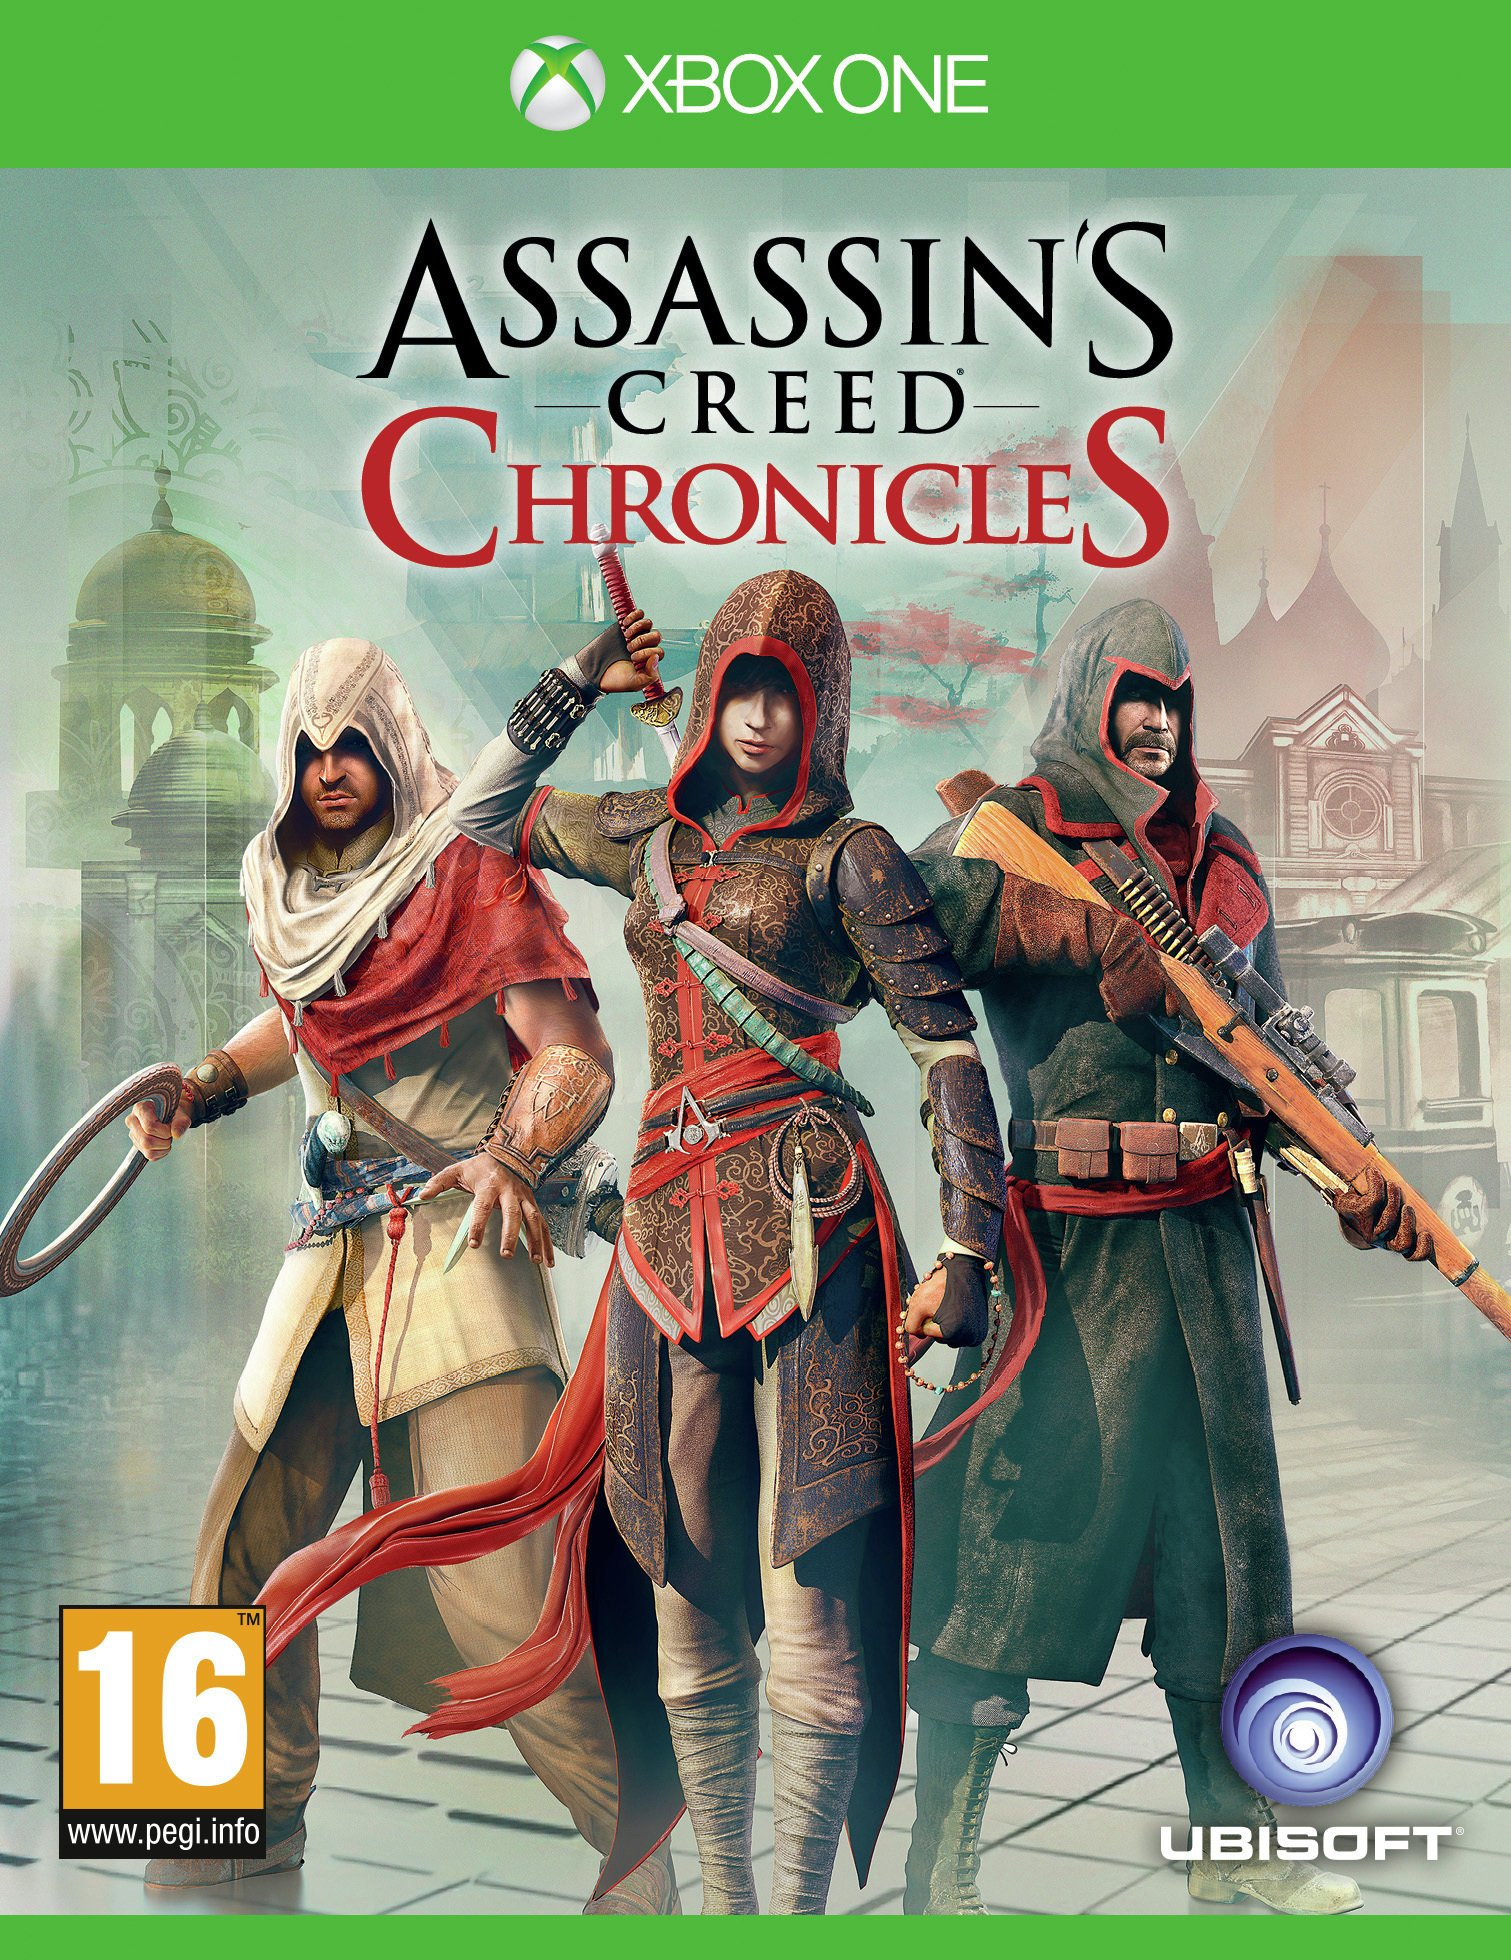 assassin-creed-chronicles-xbox-one-game